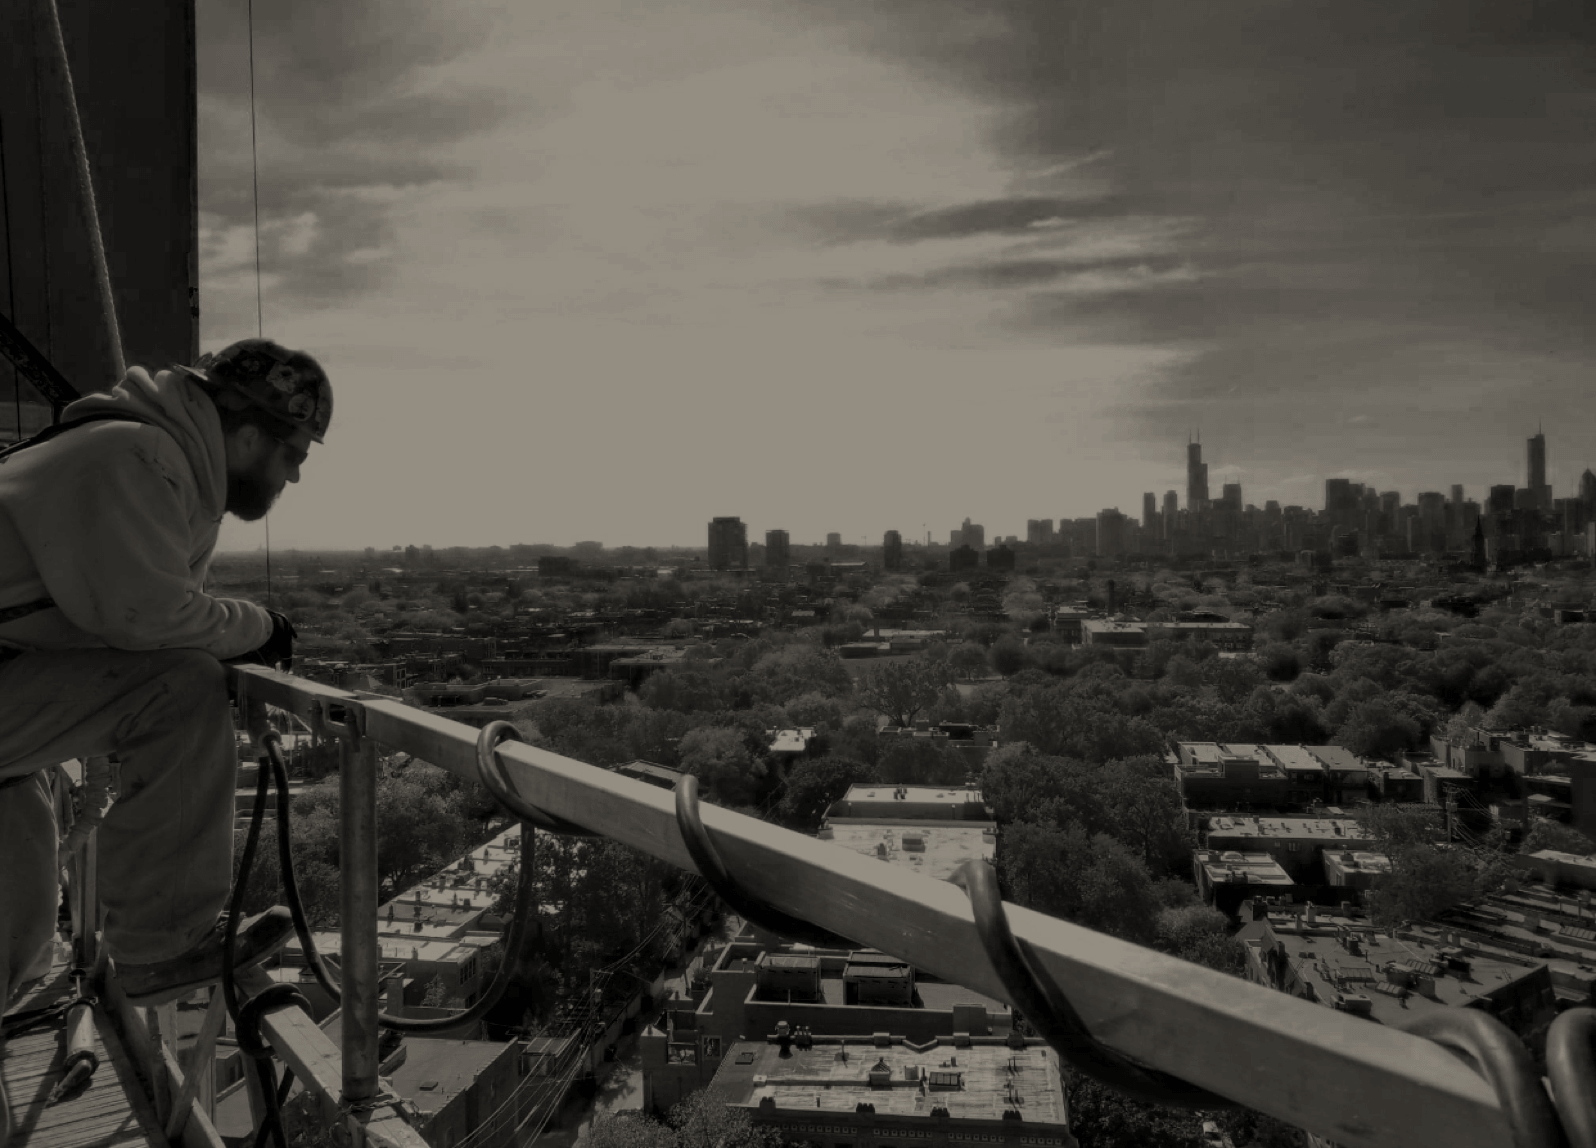 Construction Worker on a Building Site Overlooking a Skyline